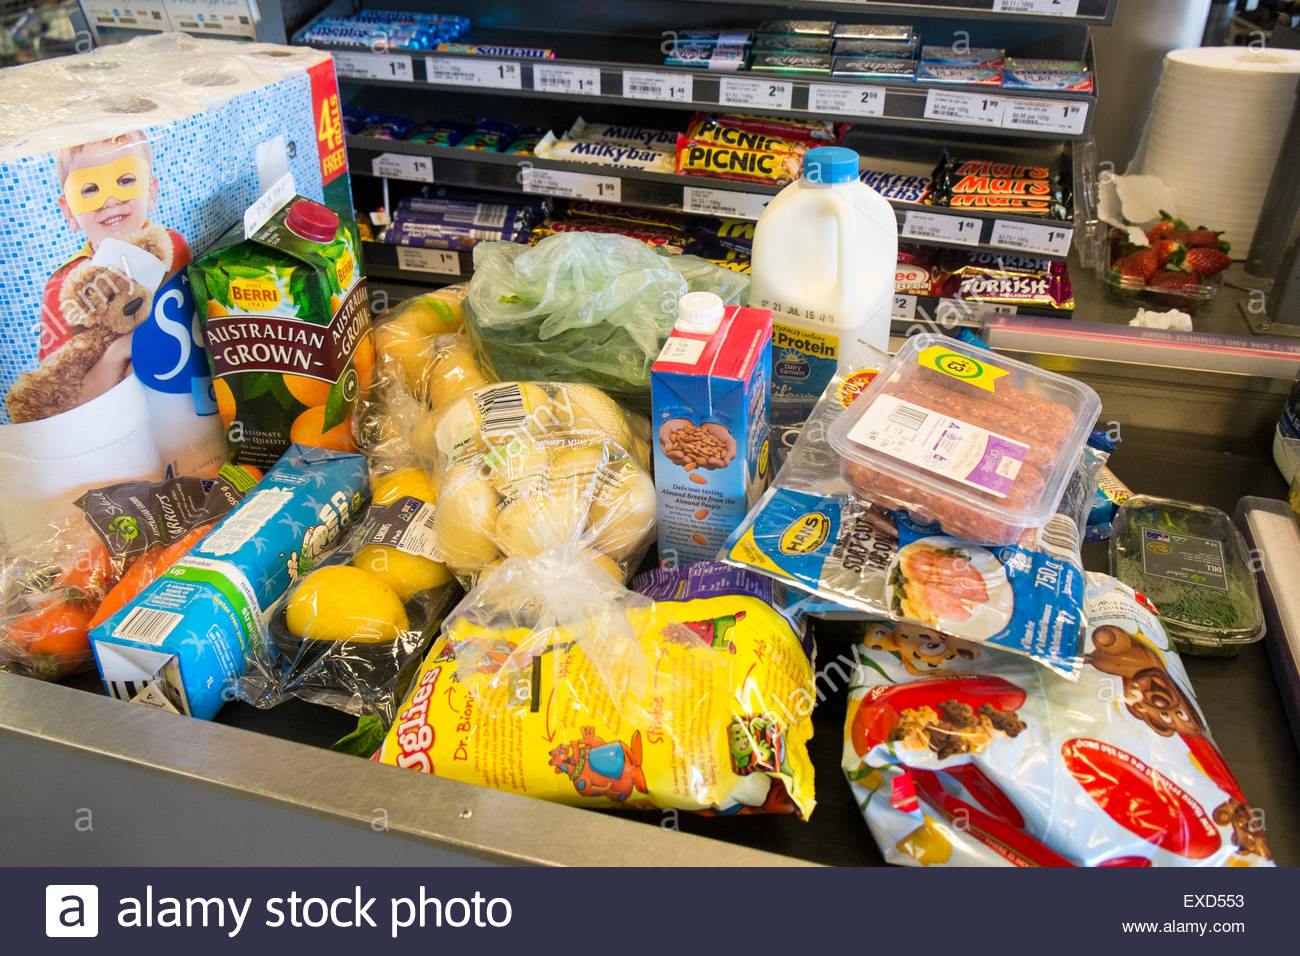 food-on-the-checkout-conveyor-belt-in-an-australian-woolworths-supermarket-EXD553[1]